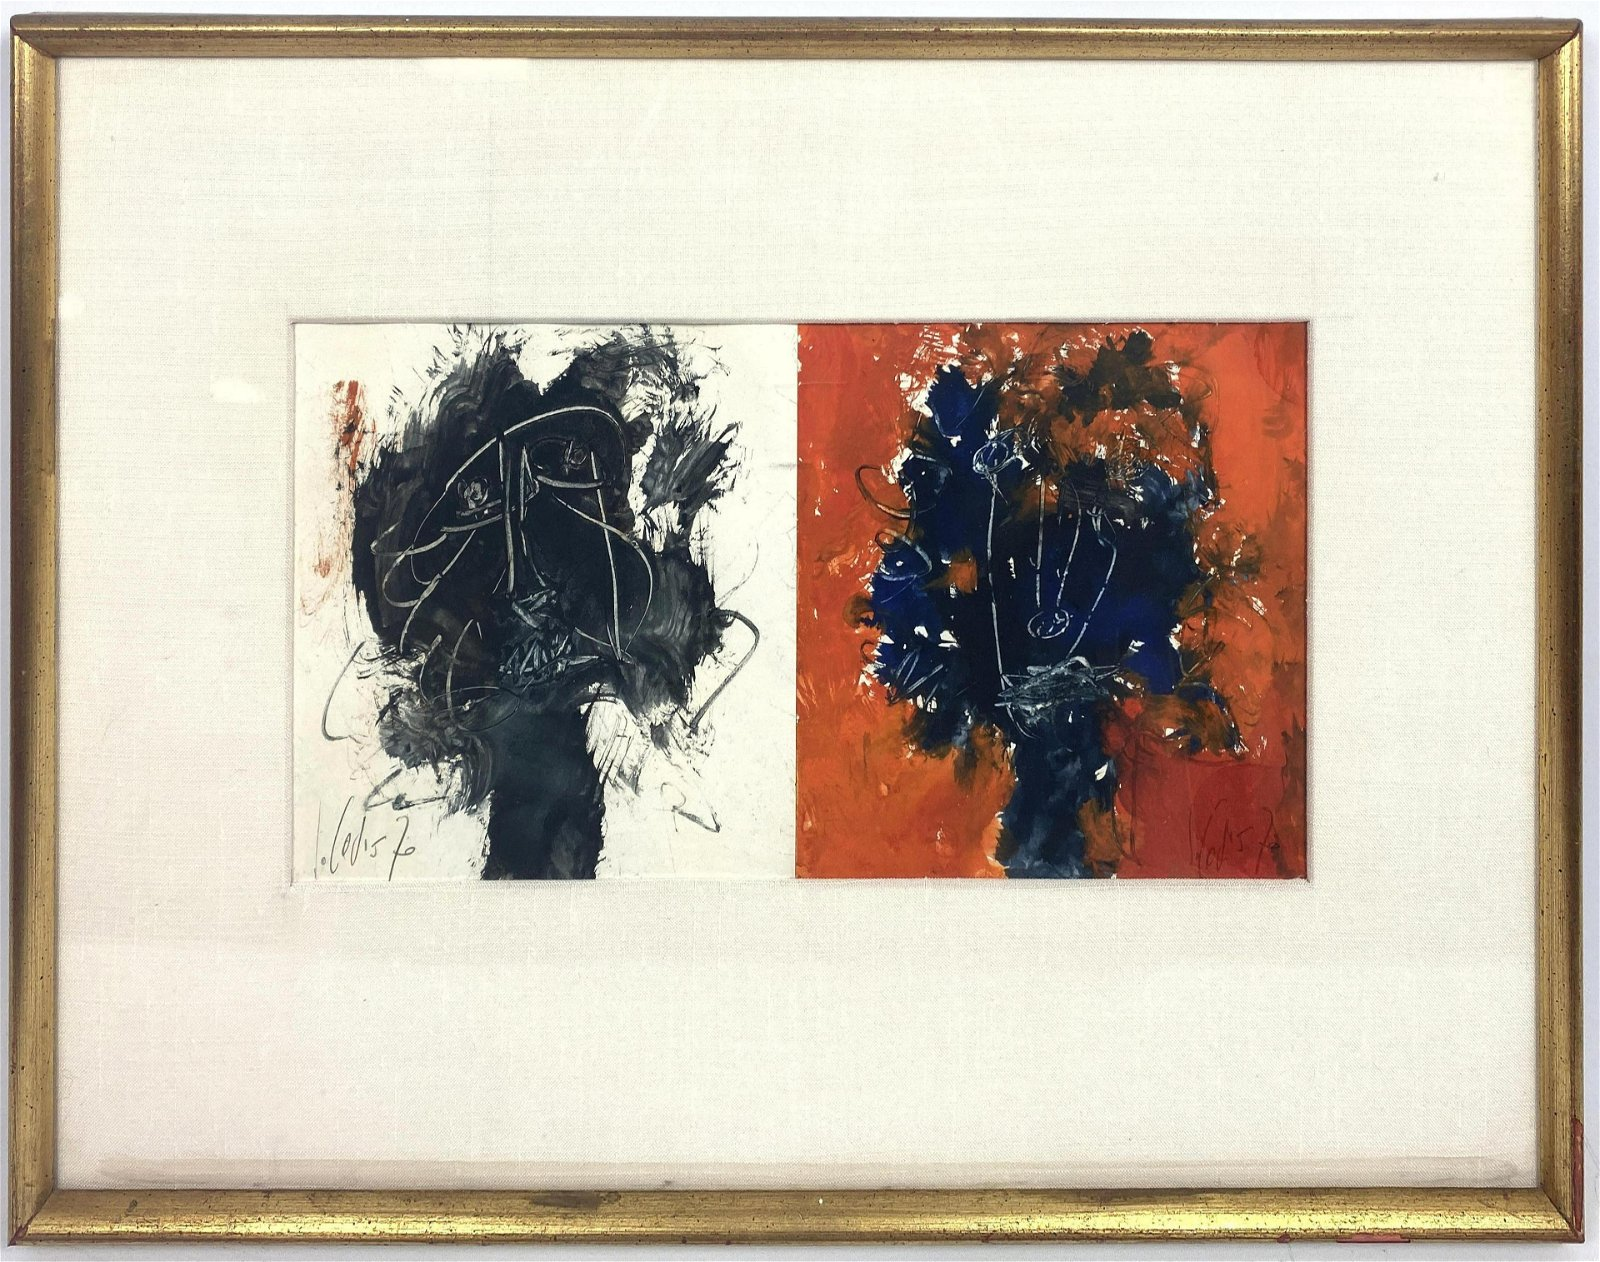 Signed Diptych Acrylic and Ink Drawings on Paper. Each